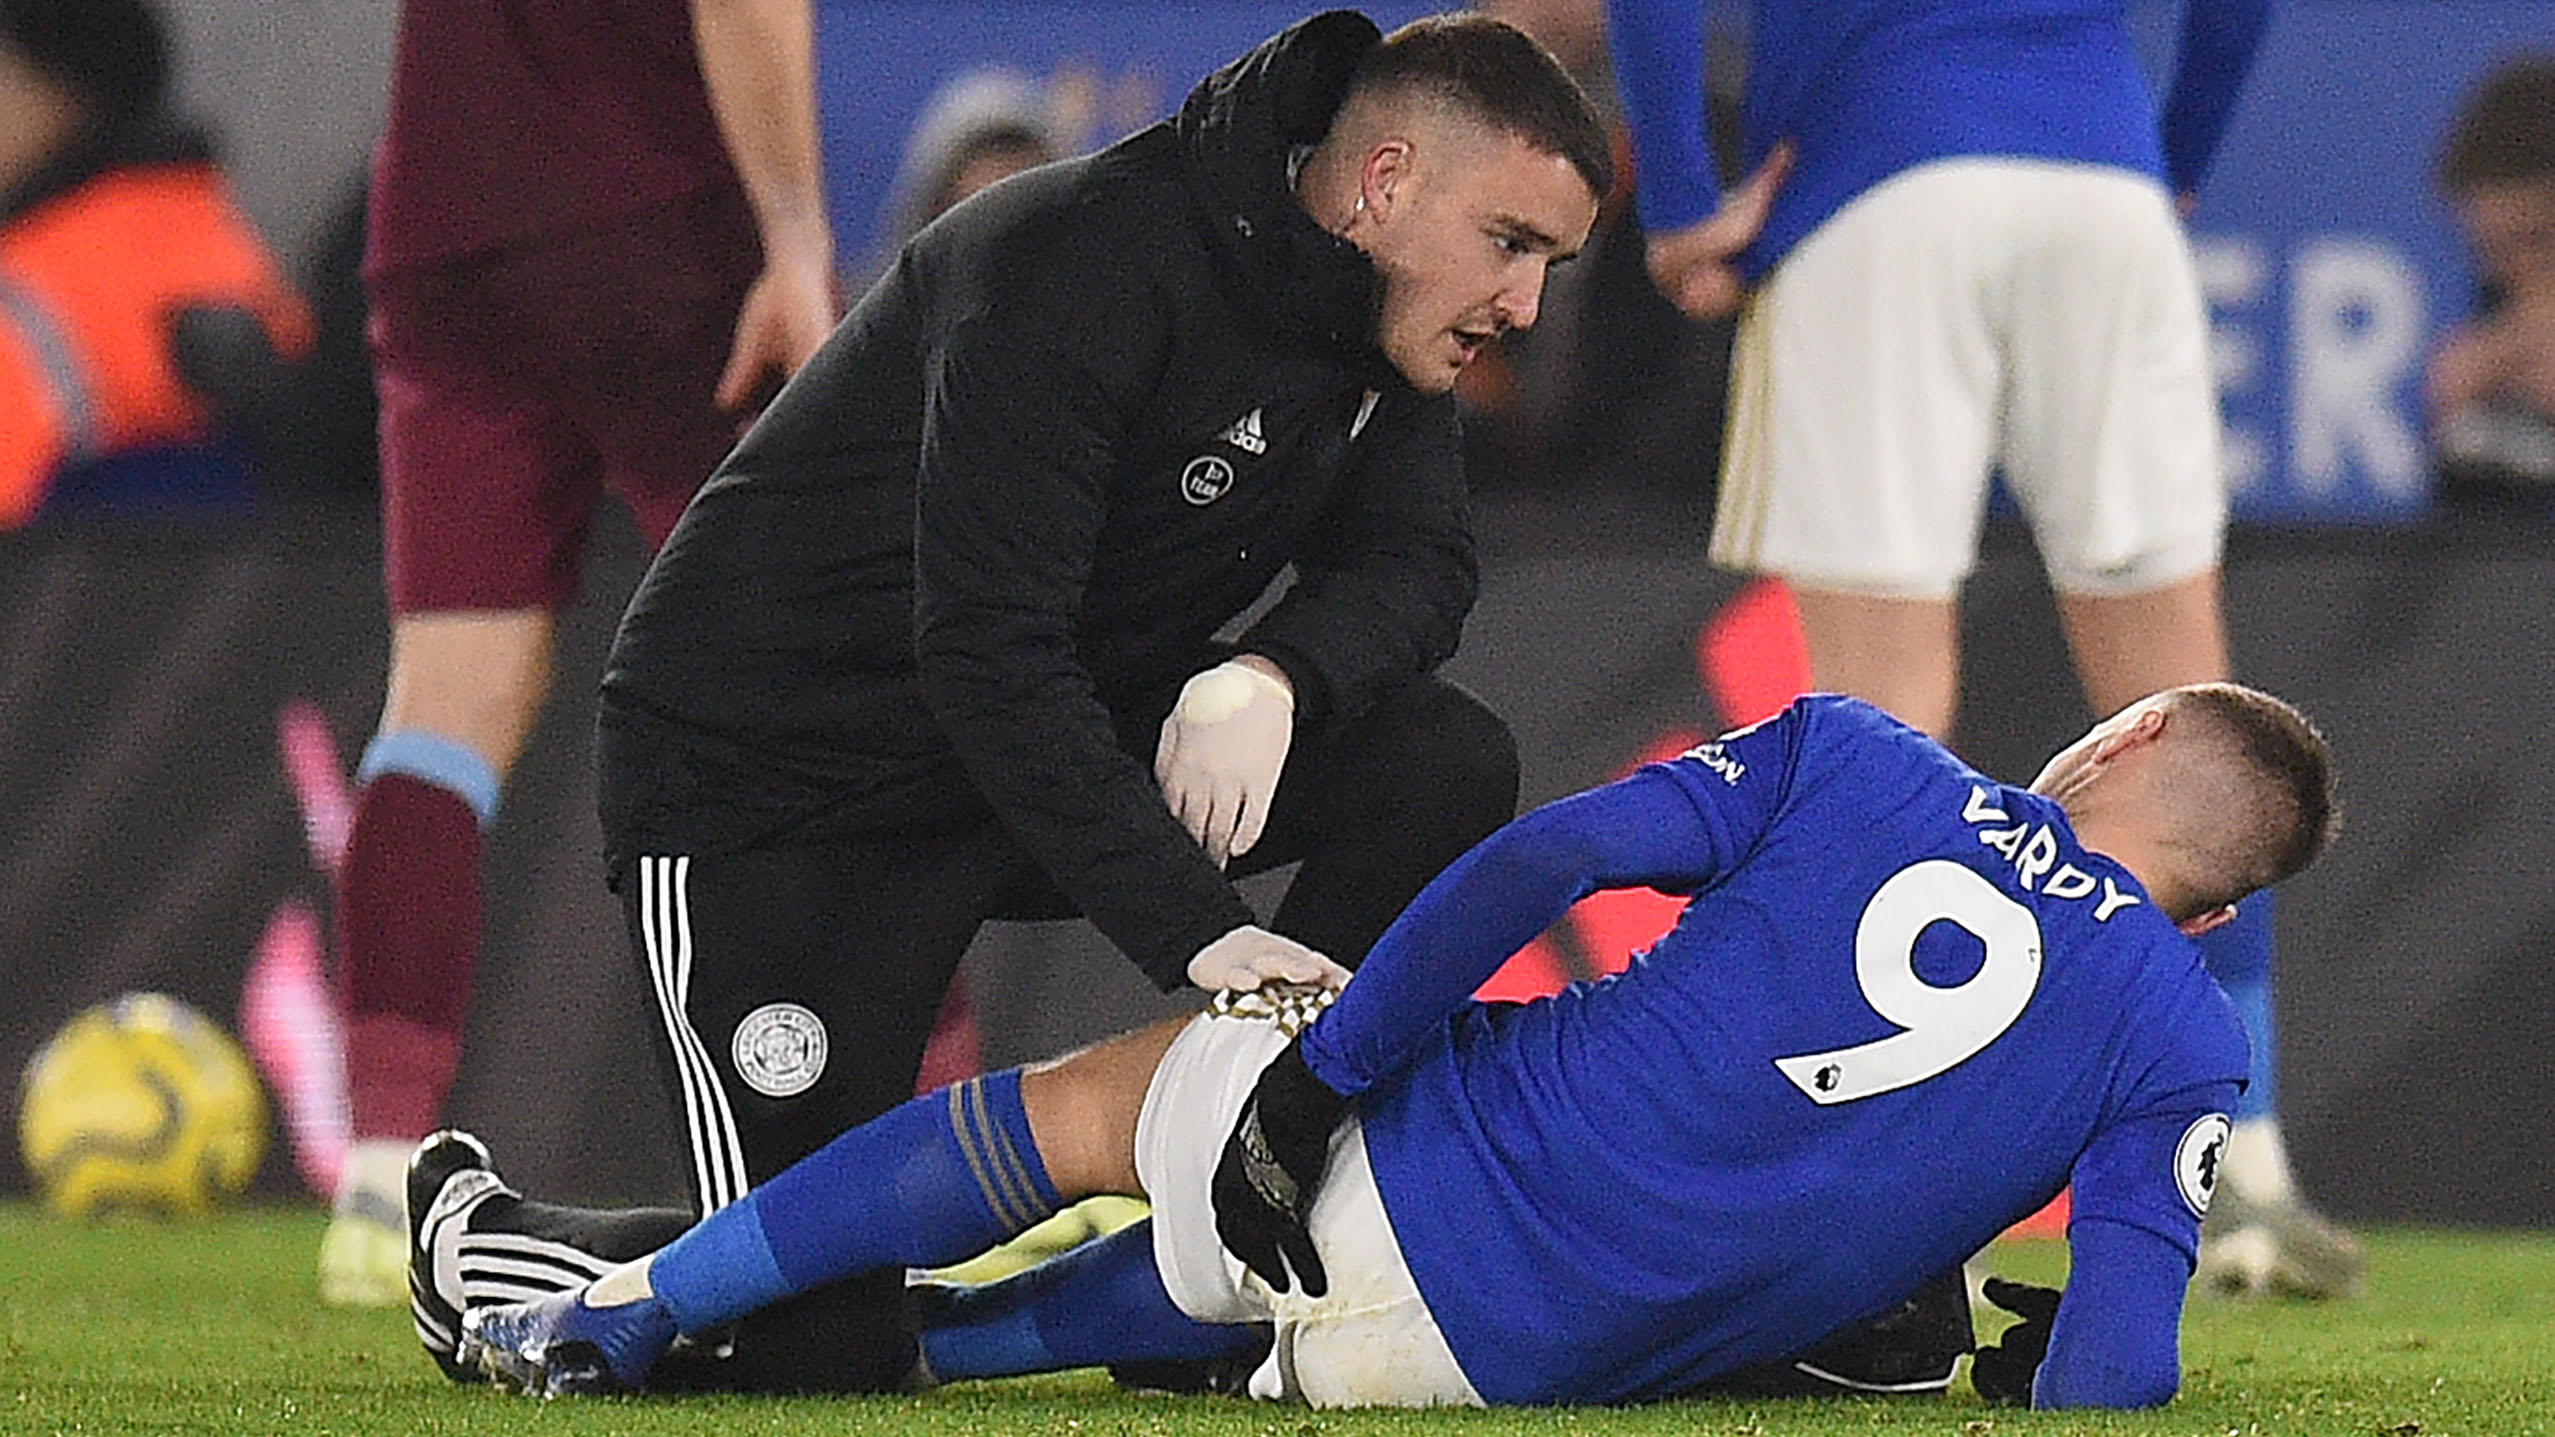 Leicester's Vardy limps off with hamstring injury